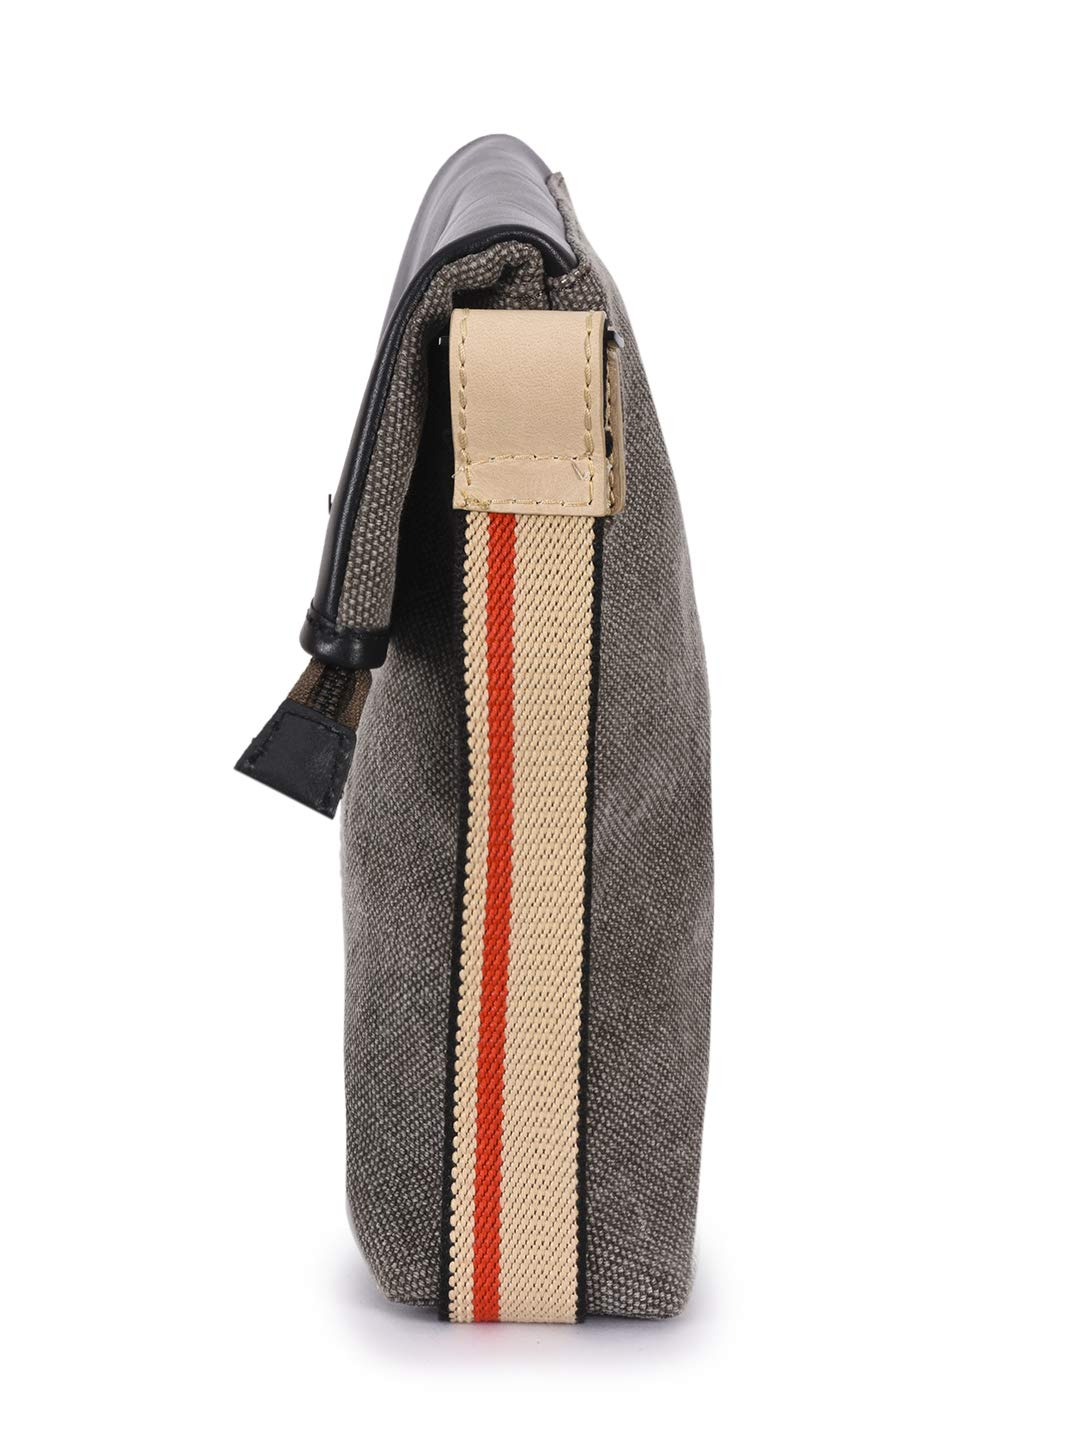 Phive Rivers Mens Leather and Canvas Multicolor Messenger Bag